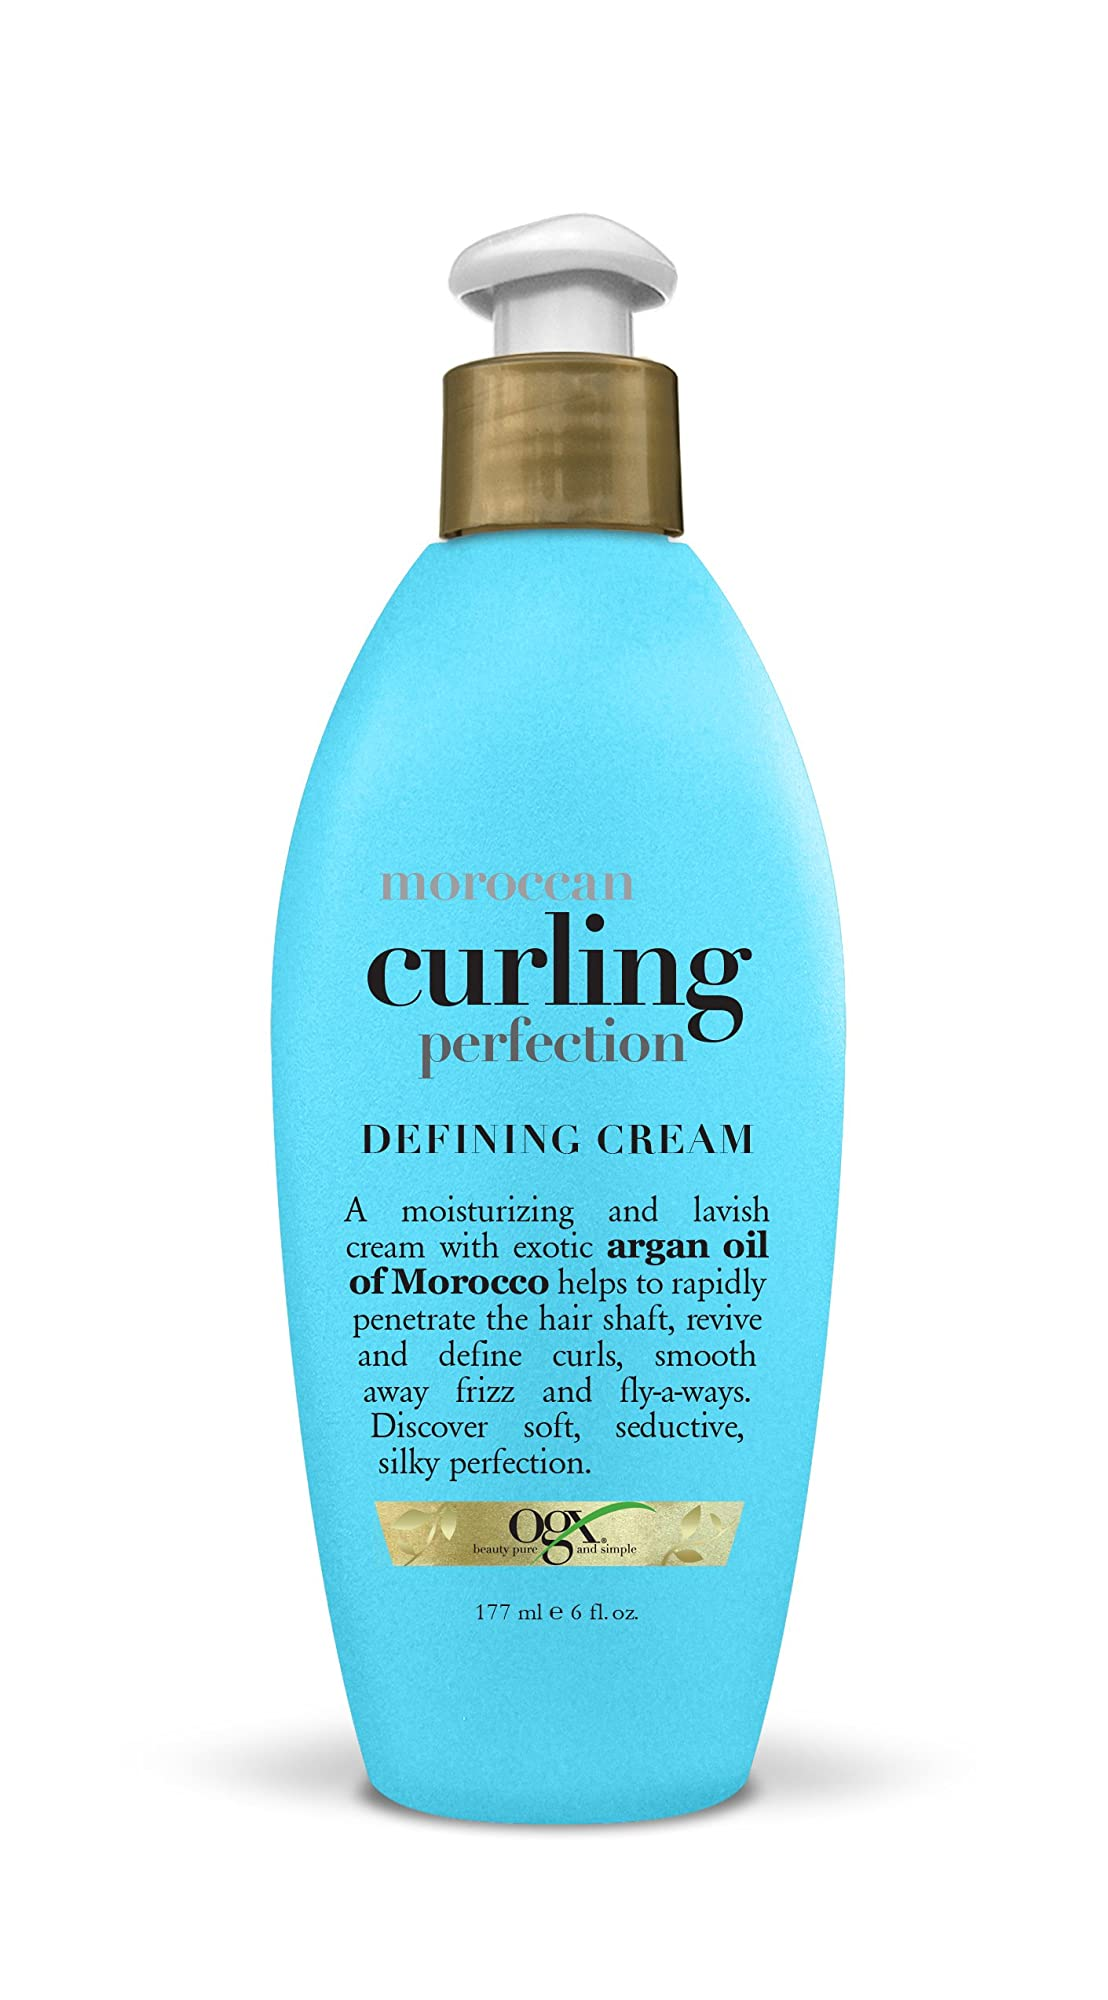 Curling Perfection Defining Cream